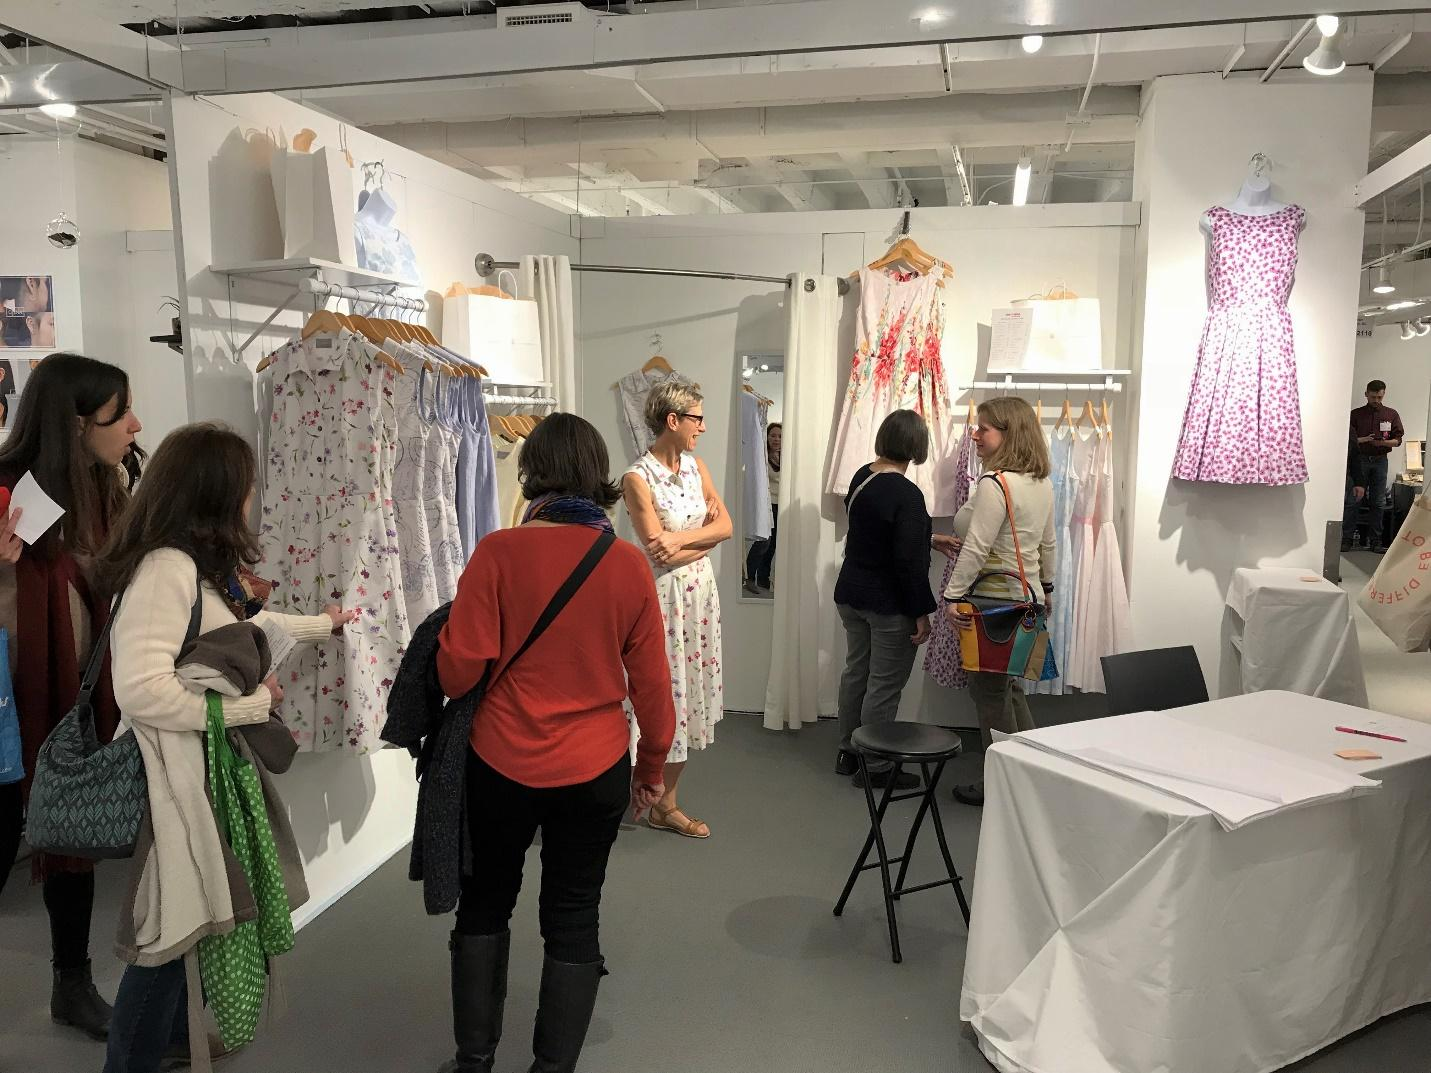 Anikka Becker in her booth at a show discussing her everyday dresses with customers.